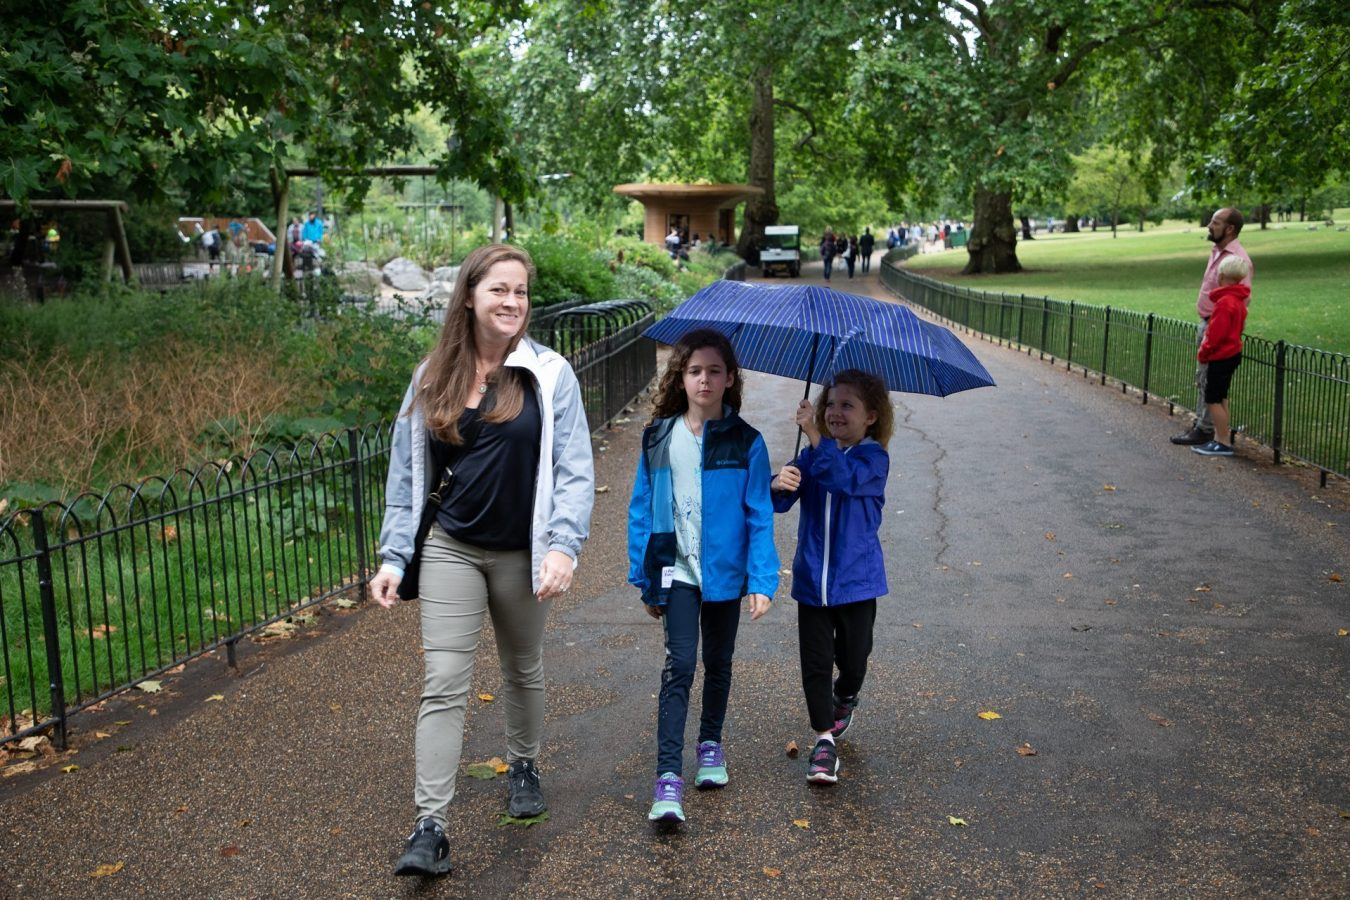 London Family Travel, London, England